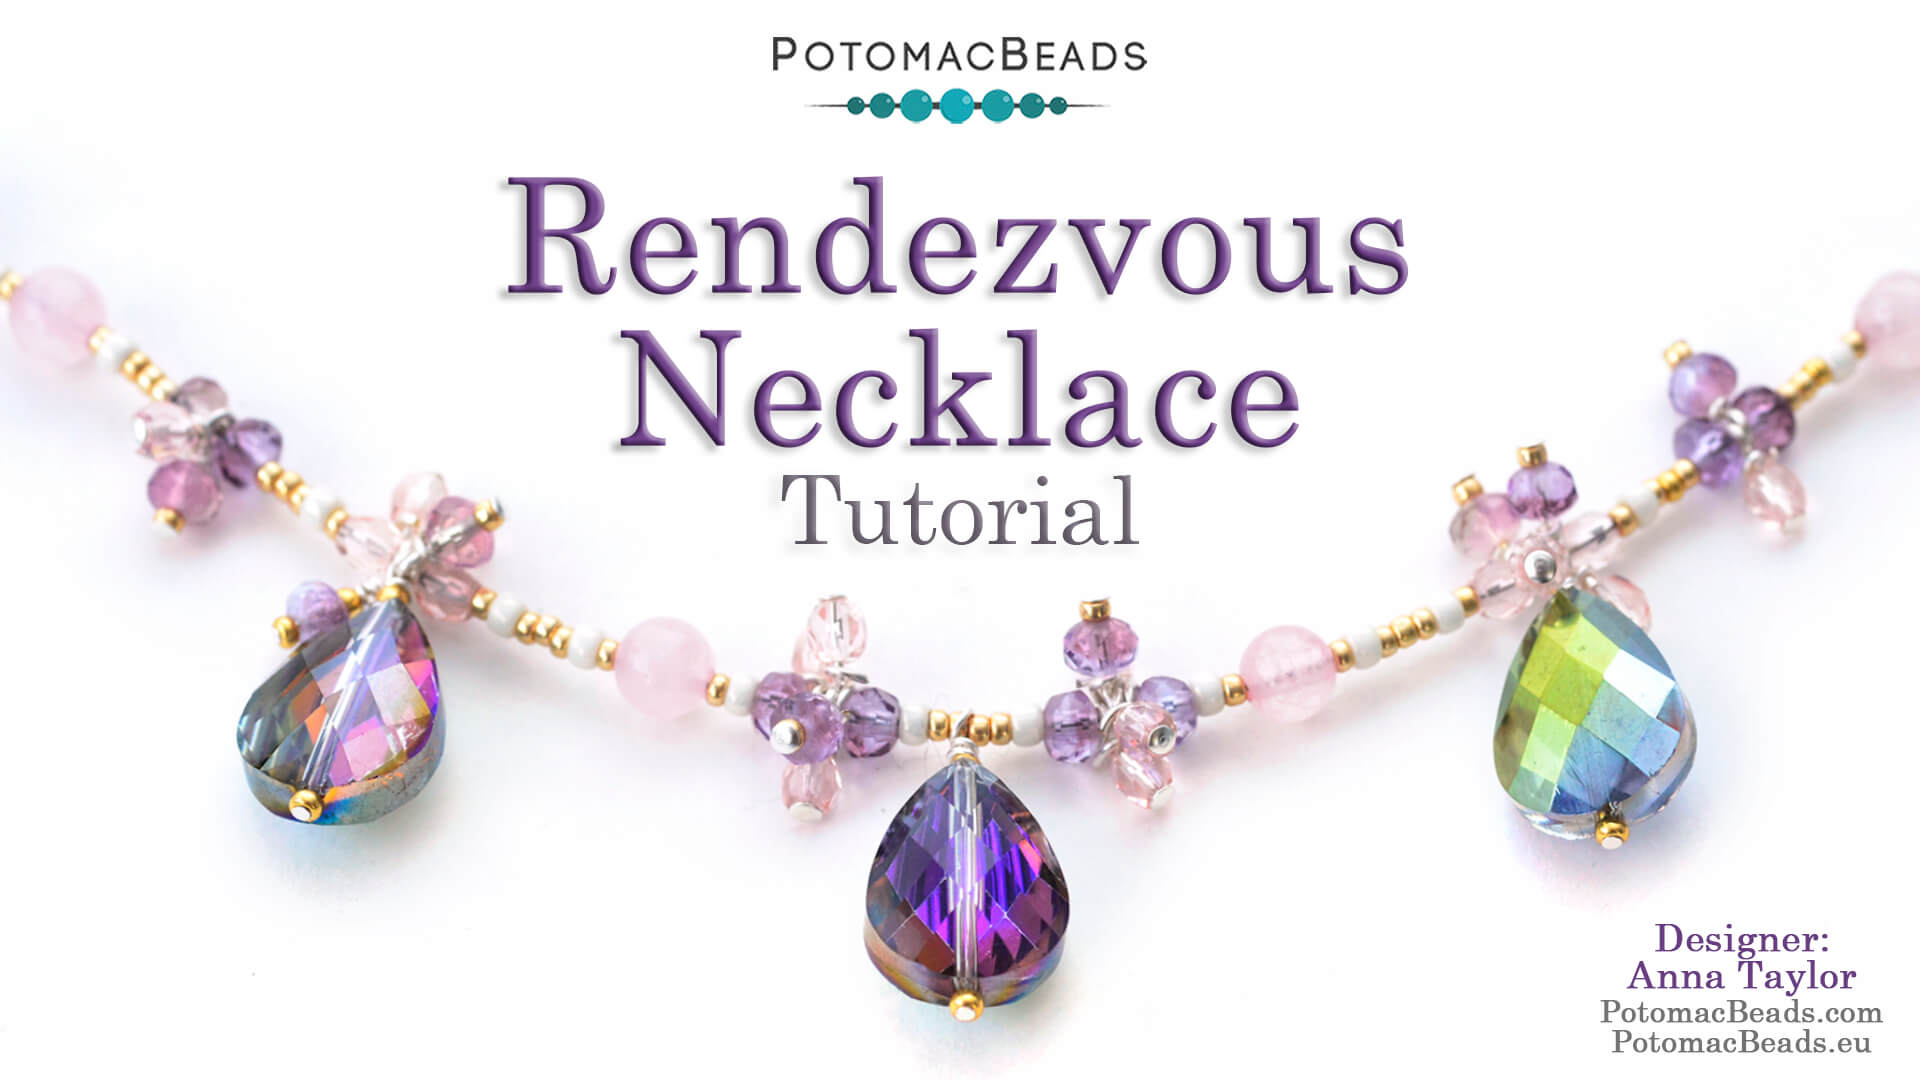 How to Bead / Videos Sorted by Beads / Potomac Crystal Videos / Rendezvous Necklace Tutorial